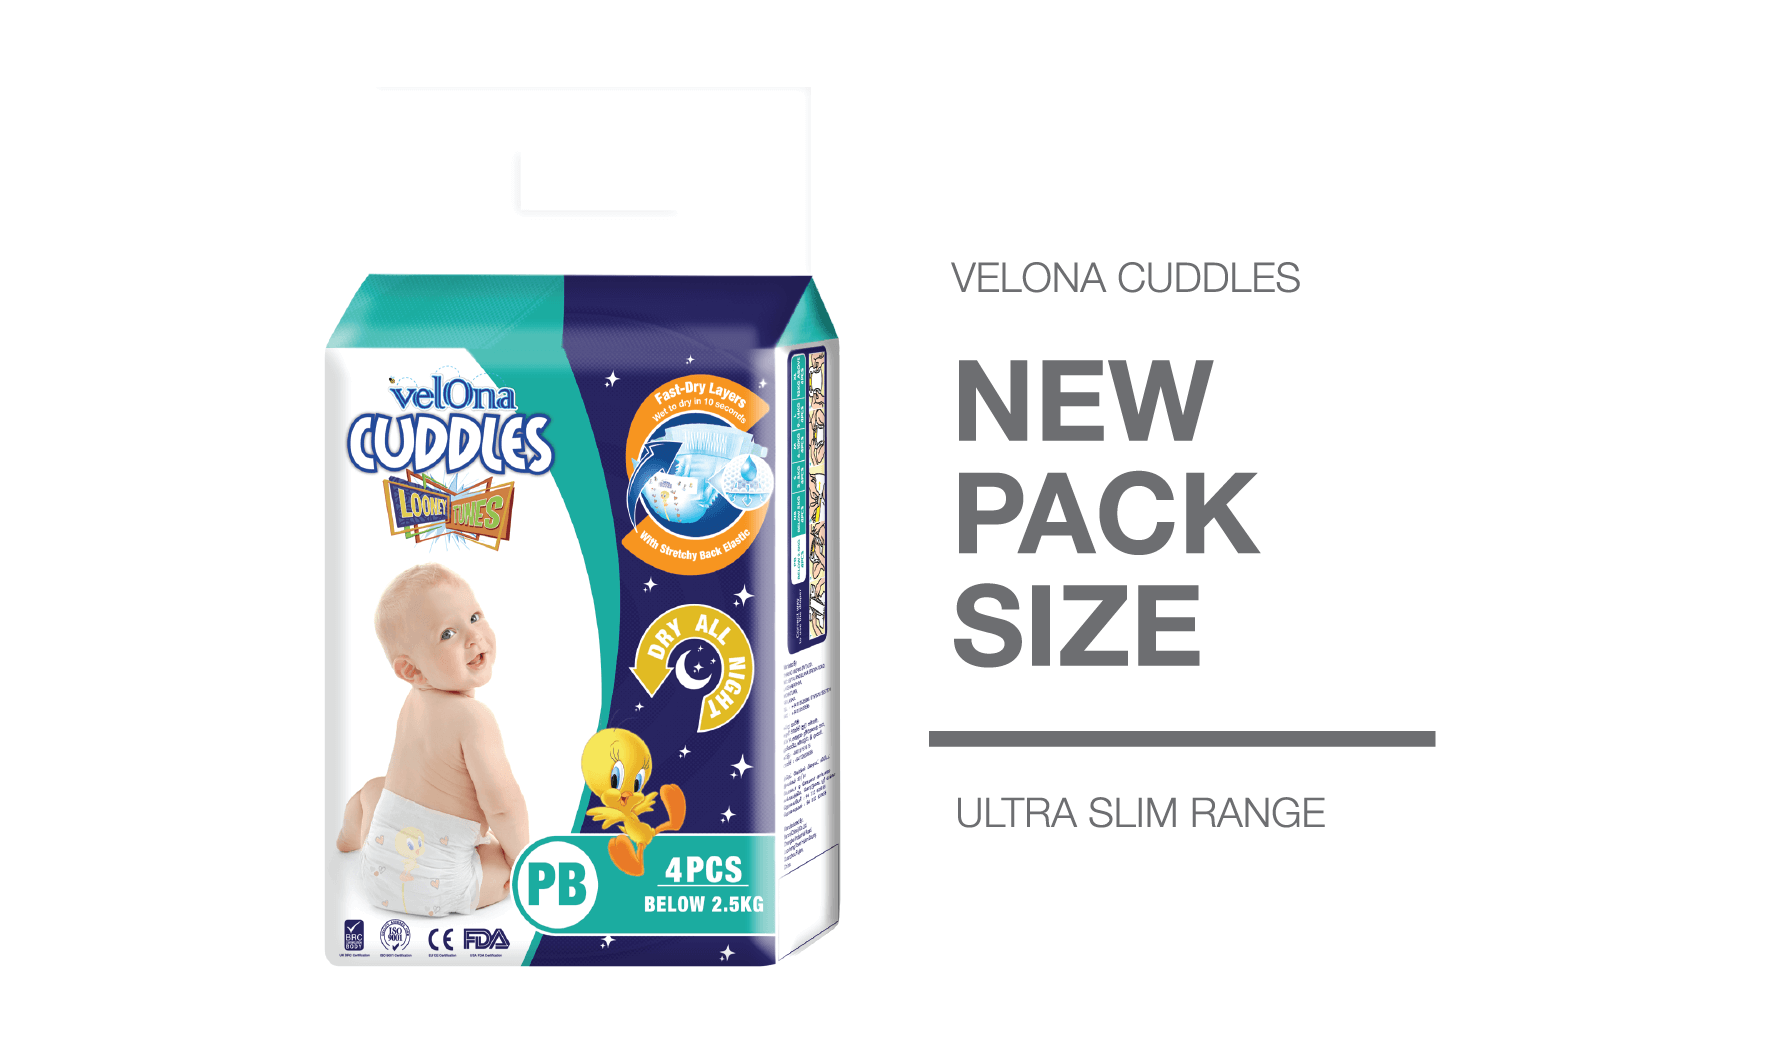 velona-4pc-Packs-in-Ultra-Slim-Range